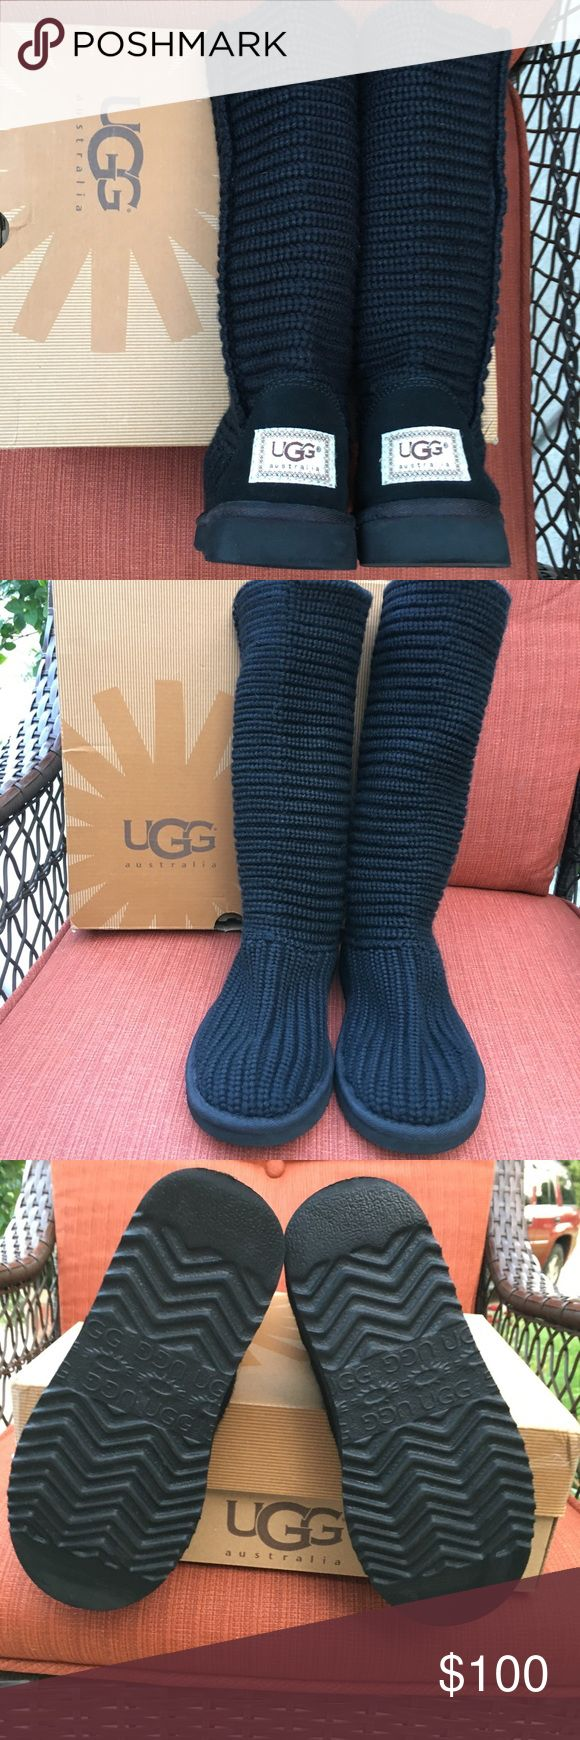 TALL KNIT UGGS LIKE NEW CONDITION Black tall knit Uggs. 🎀price firm UGG Shoes Winter & Rain Boots